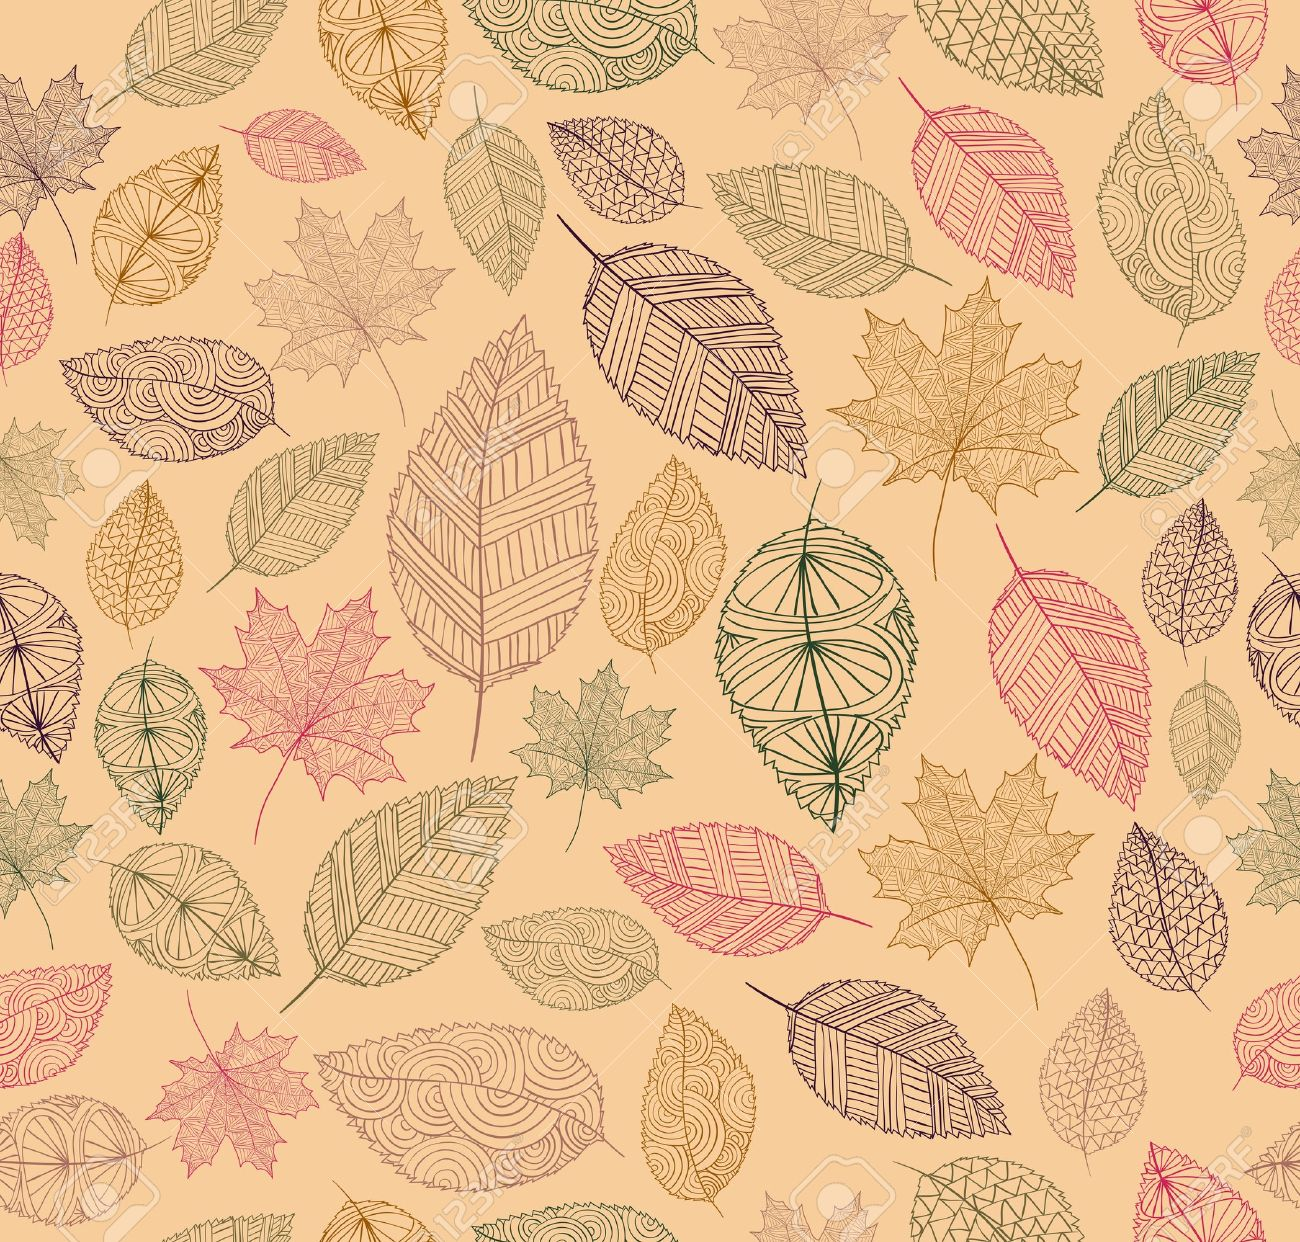 Hand drawn tree leaves seamless pattern background.  Autumn season concept Stock Vector - 21909986